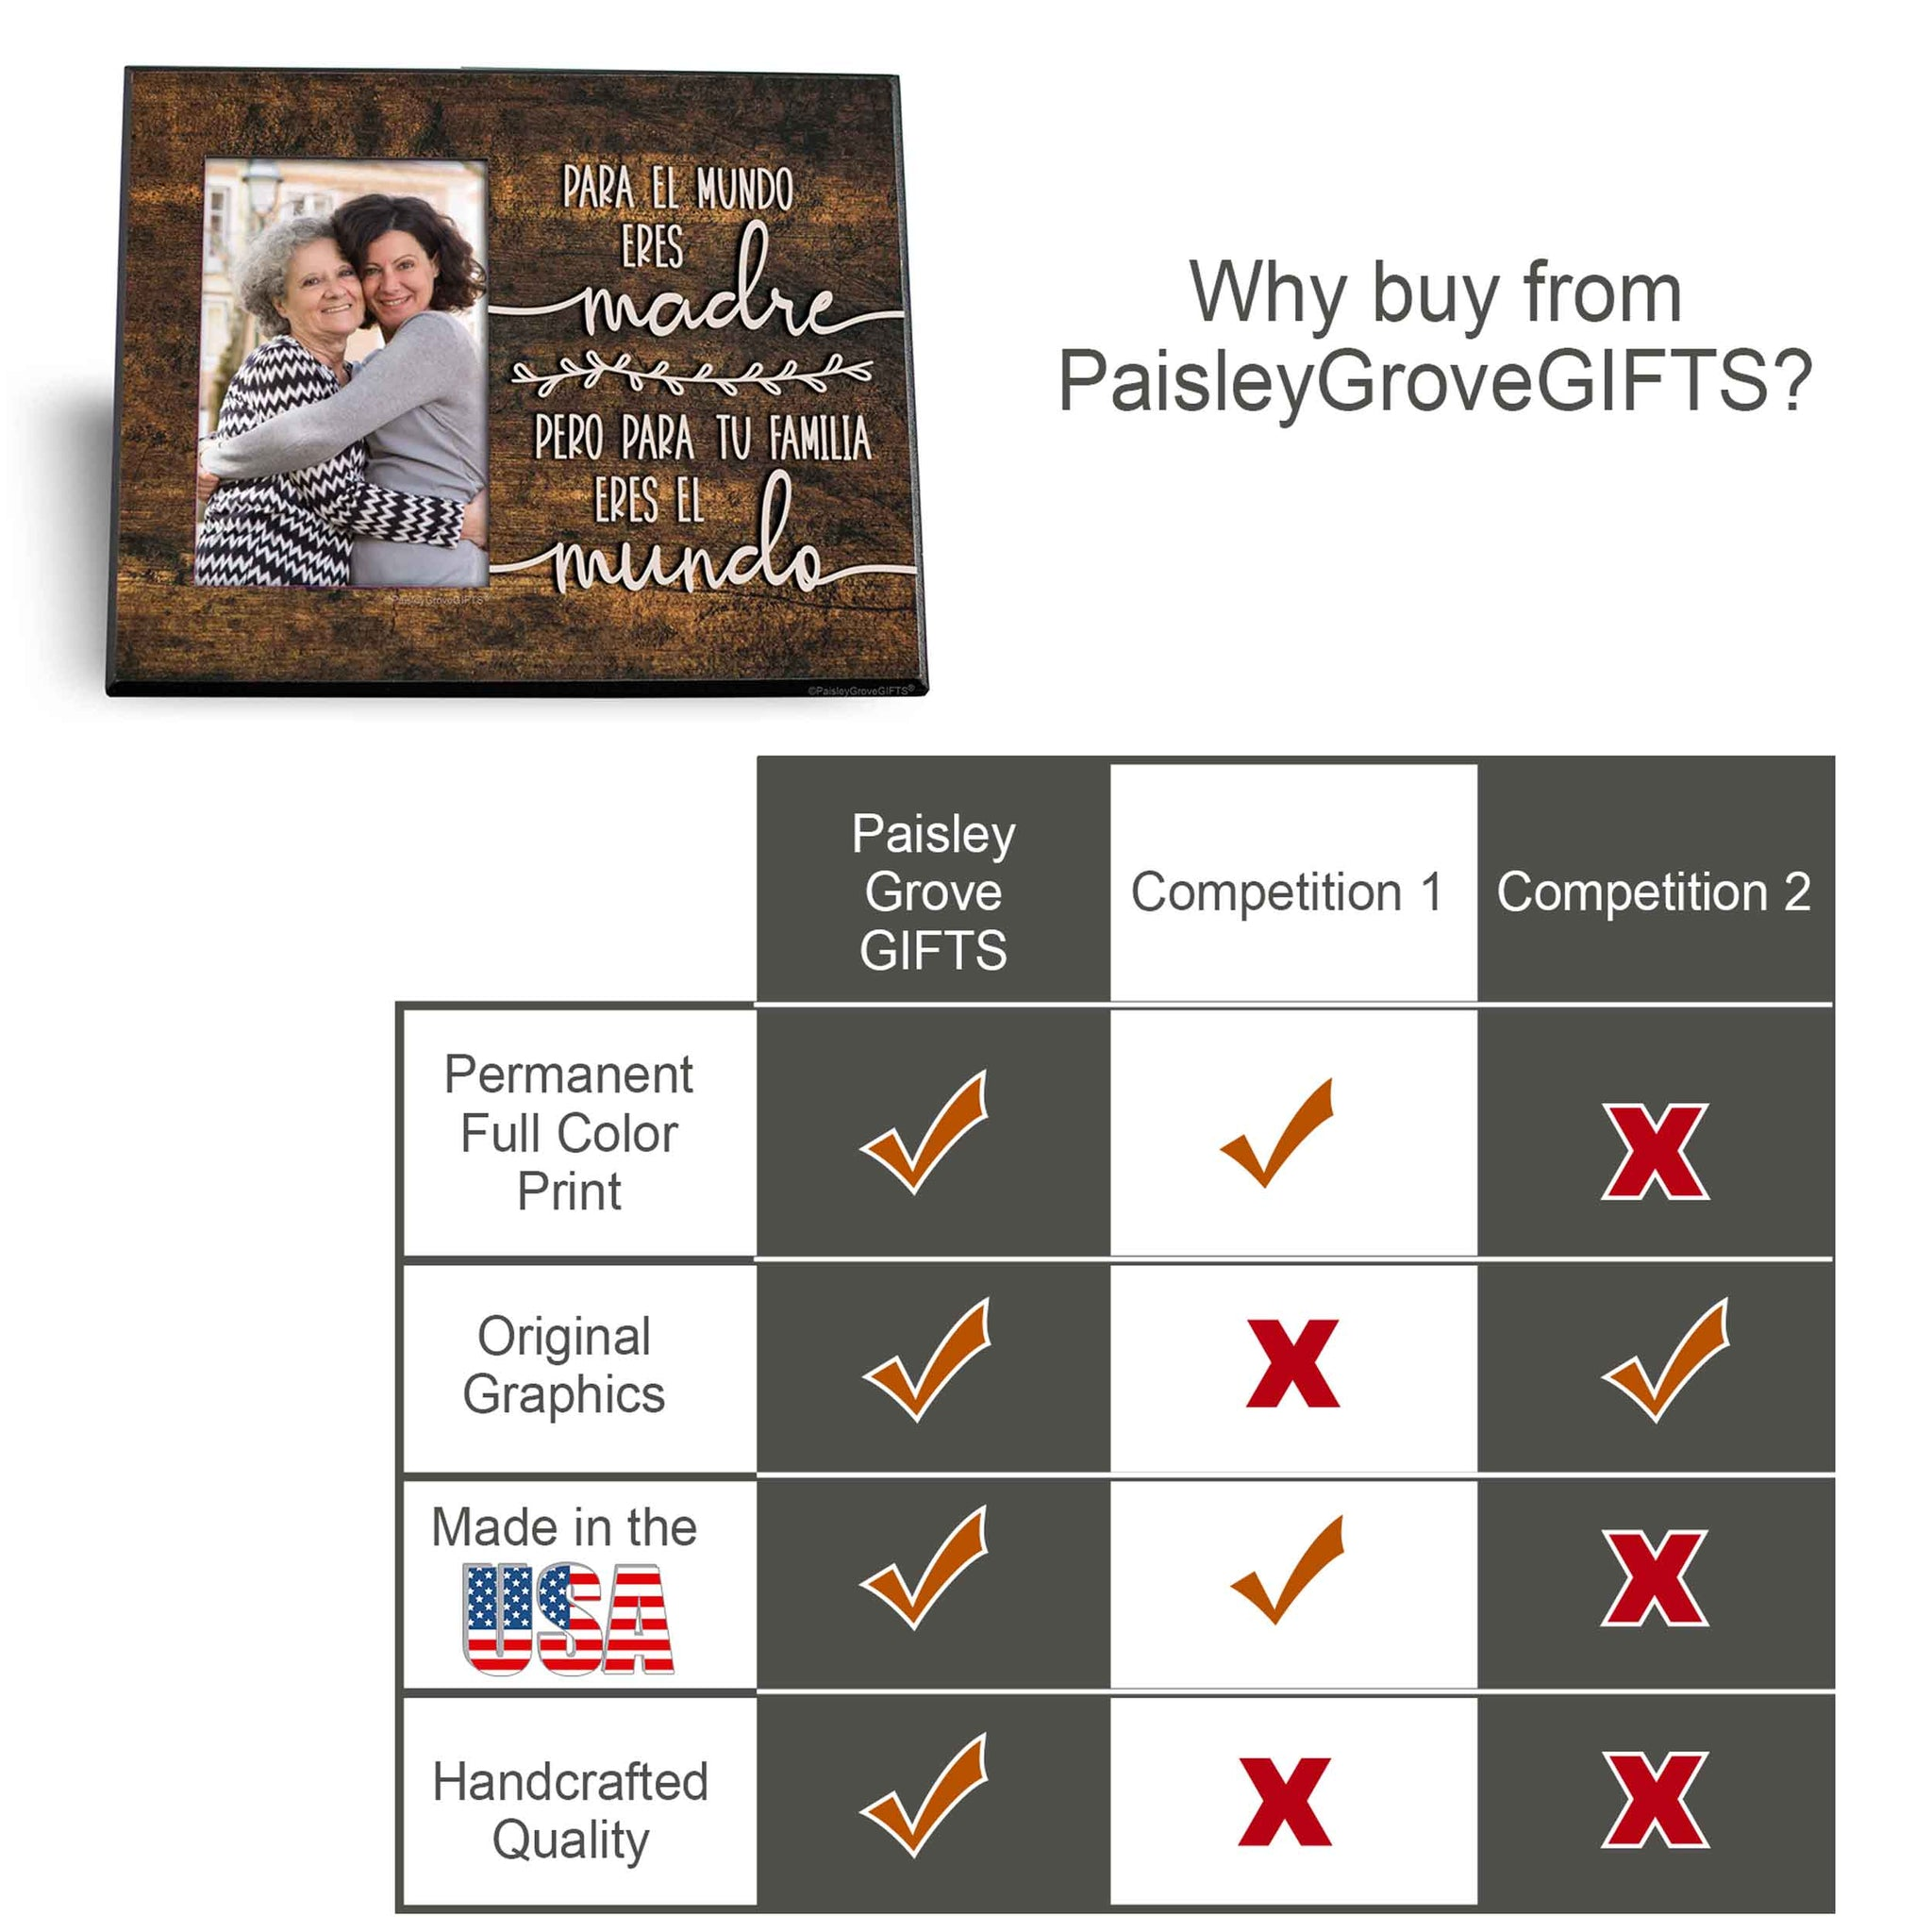 CopyrightPaisleyGroveGIFTS S200d Unique gift for spanish moms high quality comparison chart from Paisleygrovegifts